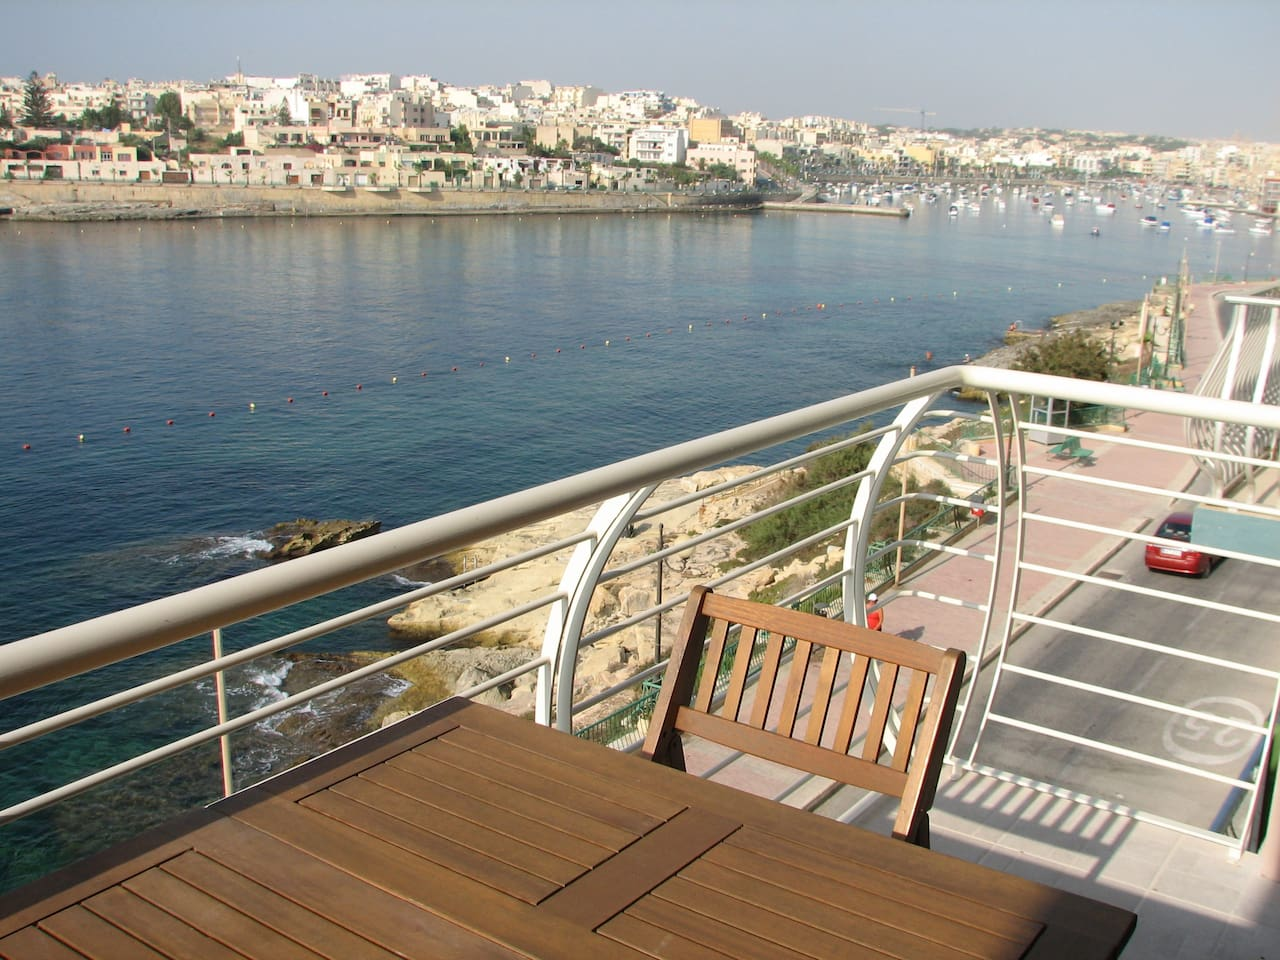 View From Balcony, Balcony consists of an outdoor table and 4 chairs. Swimmers zone is indicated by buoys floating .